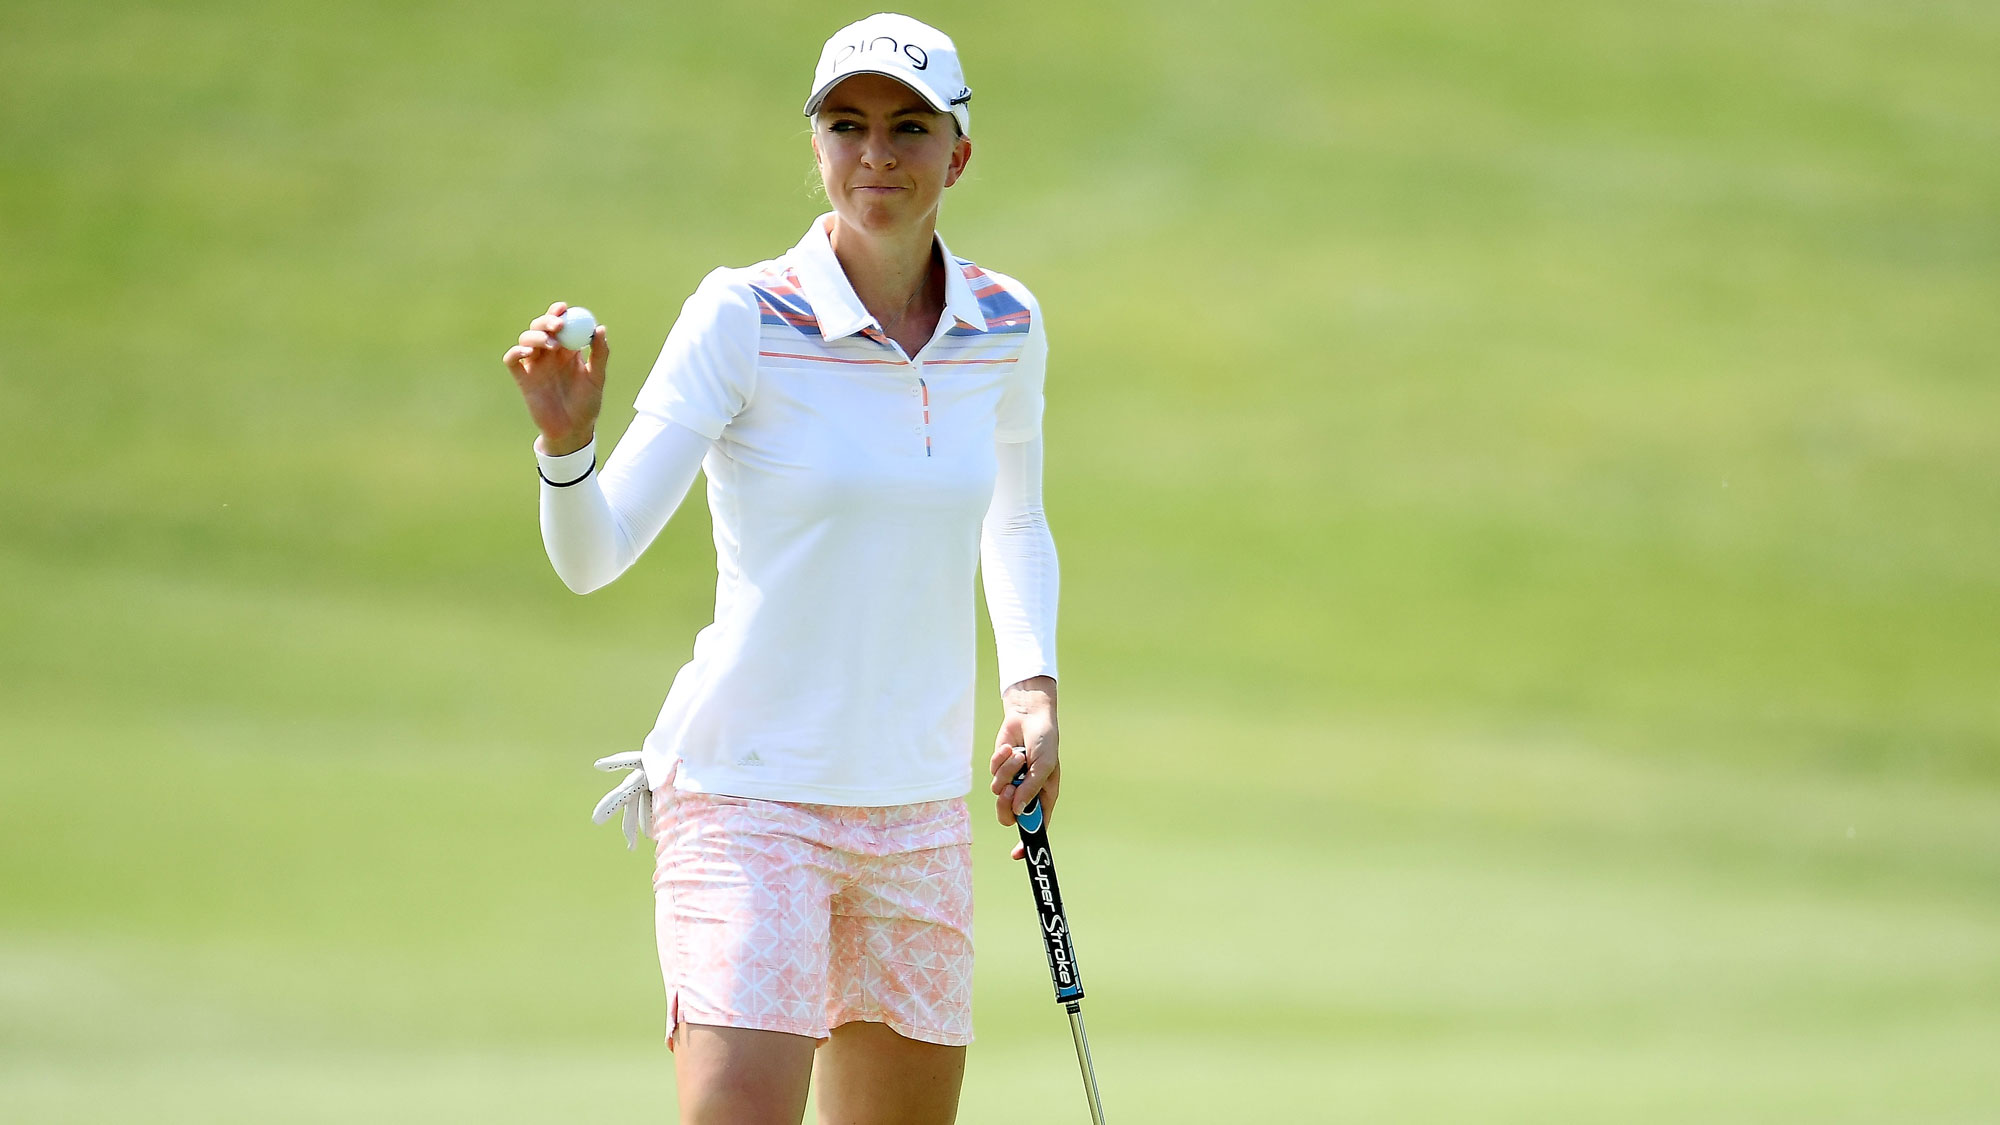 Sophia Popov After a Birdie at the Meijer LPGA Classic